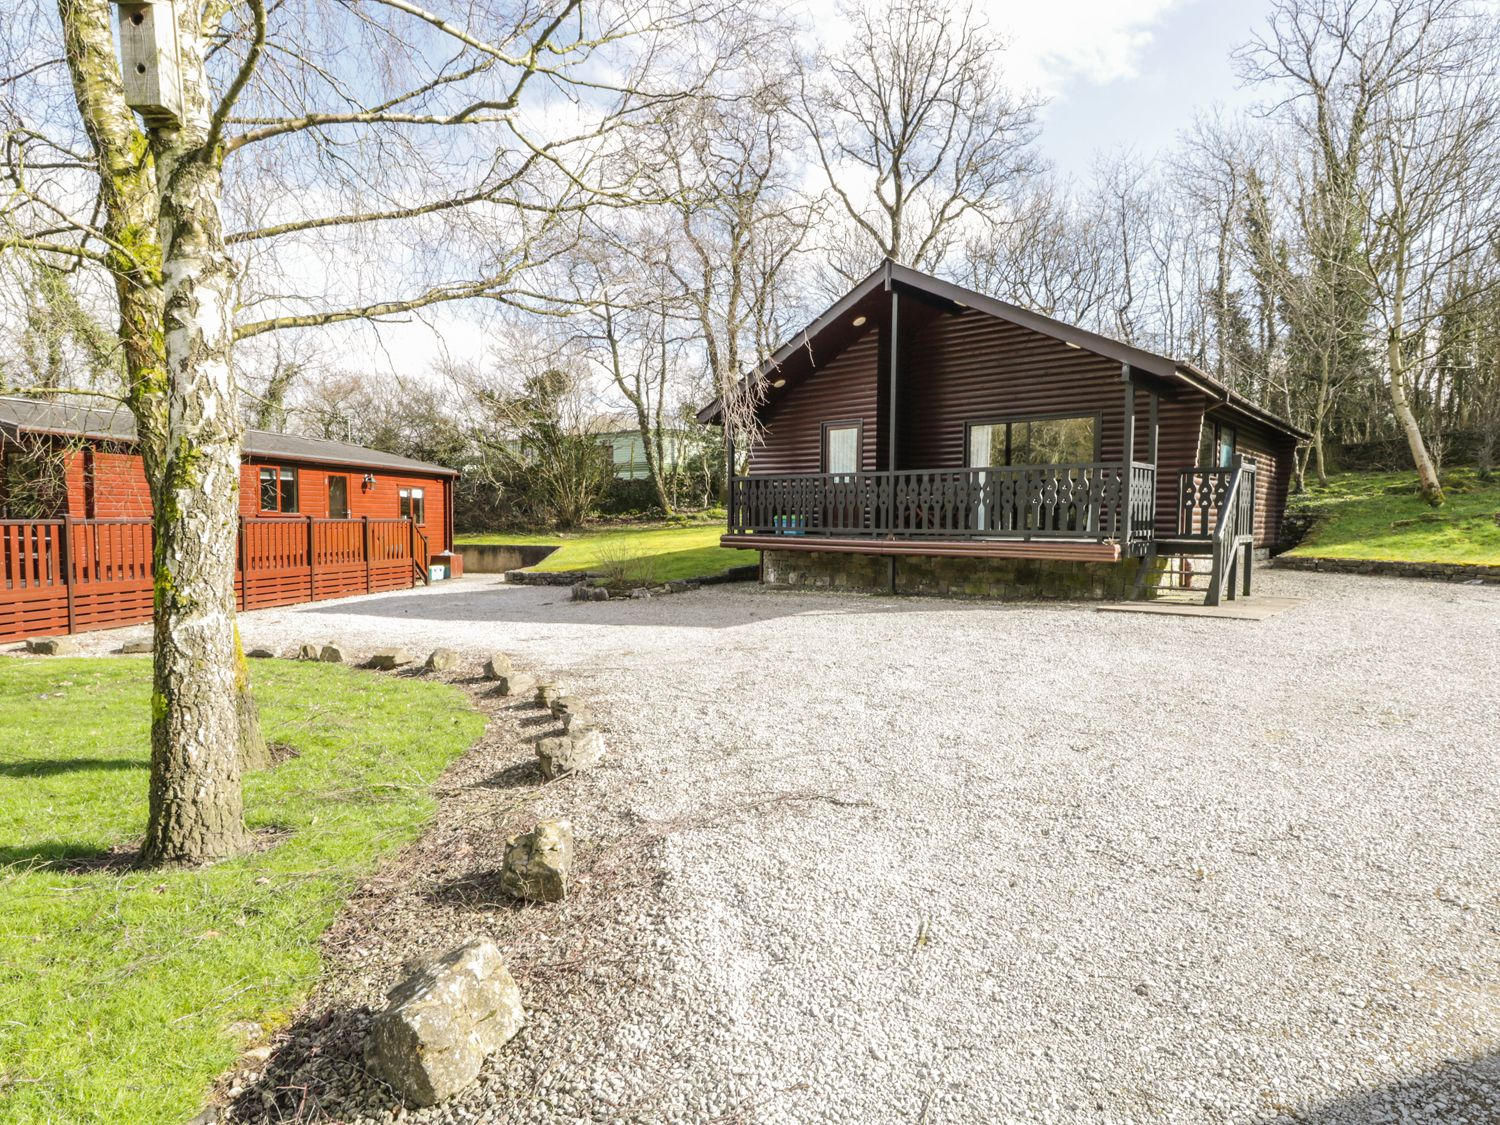 Elm Lodge - Elm - Lake District - 972694 - photo 1